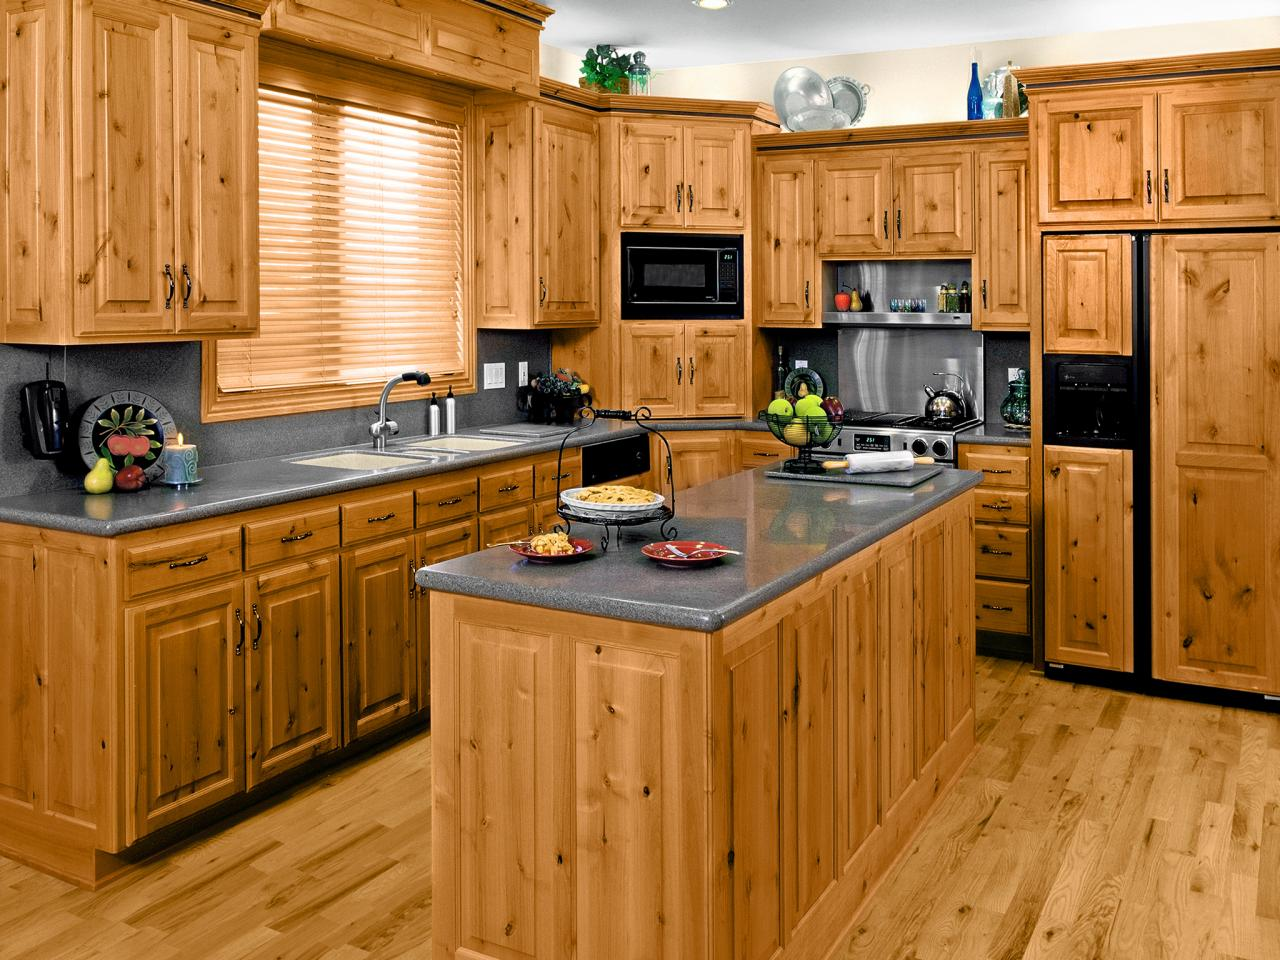 pine kitchen cabinets: pictures, options, tips & ideas | hgtv